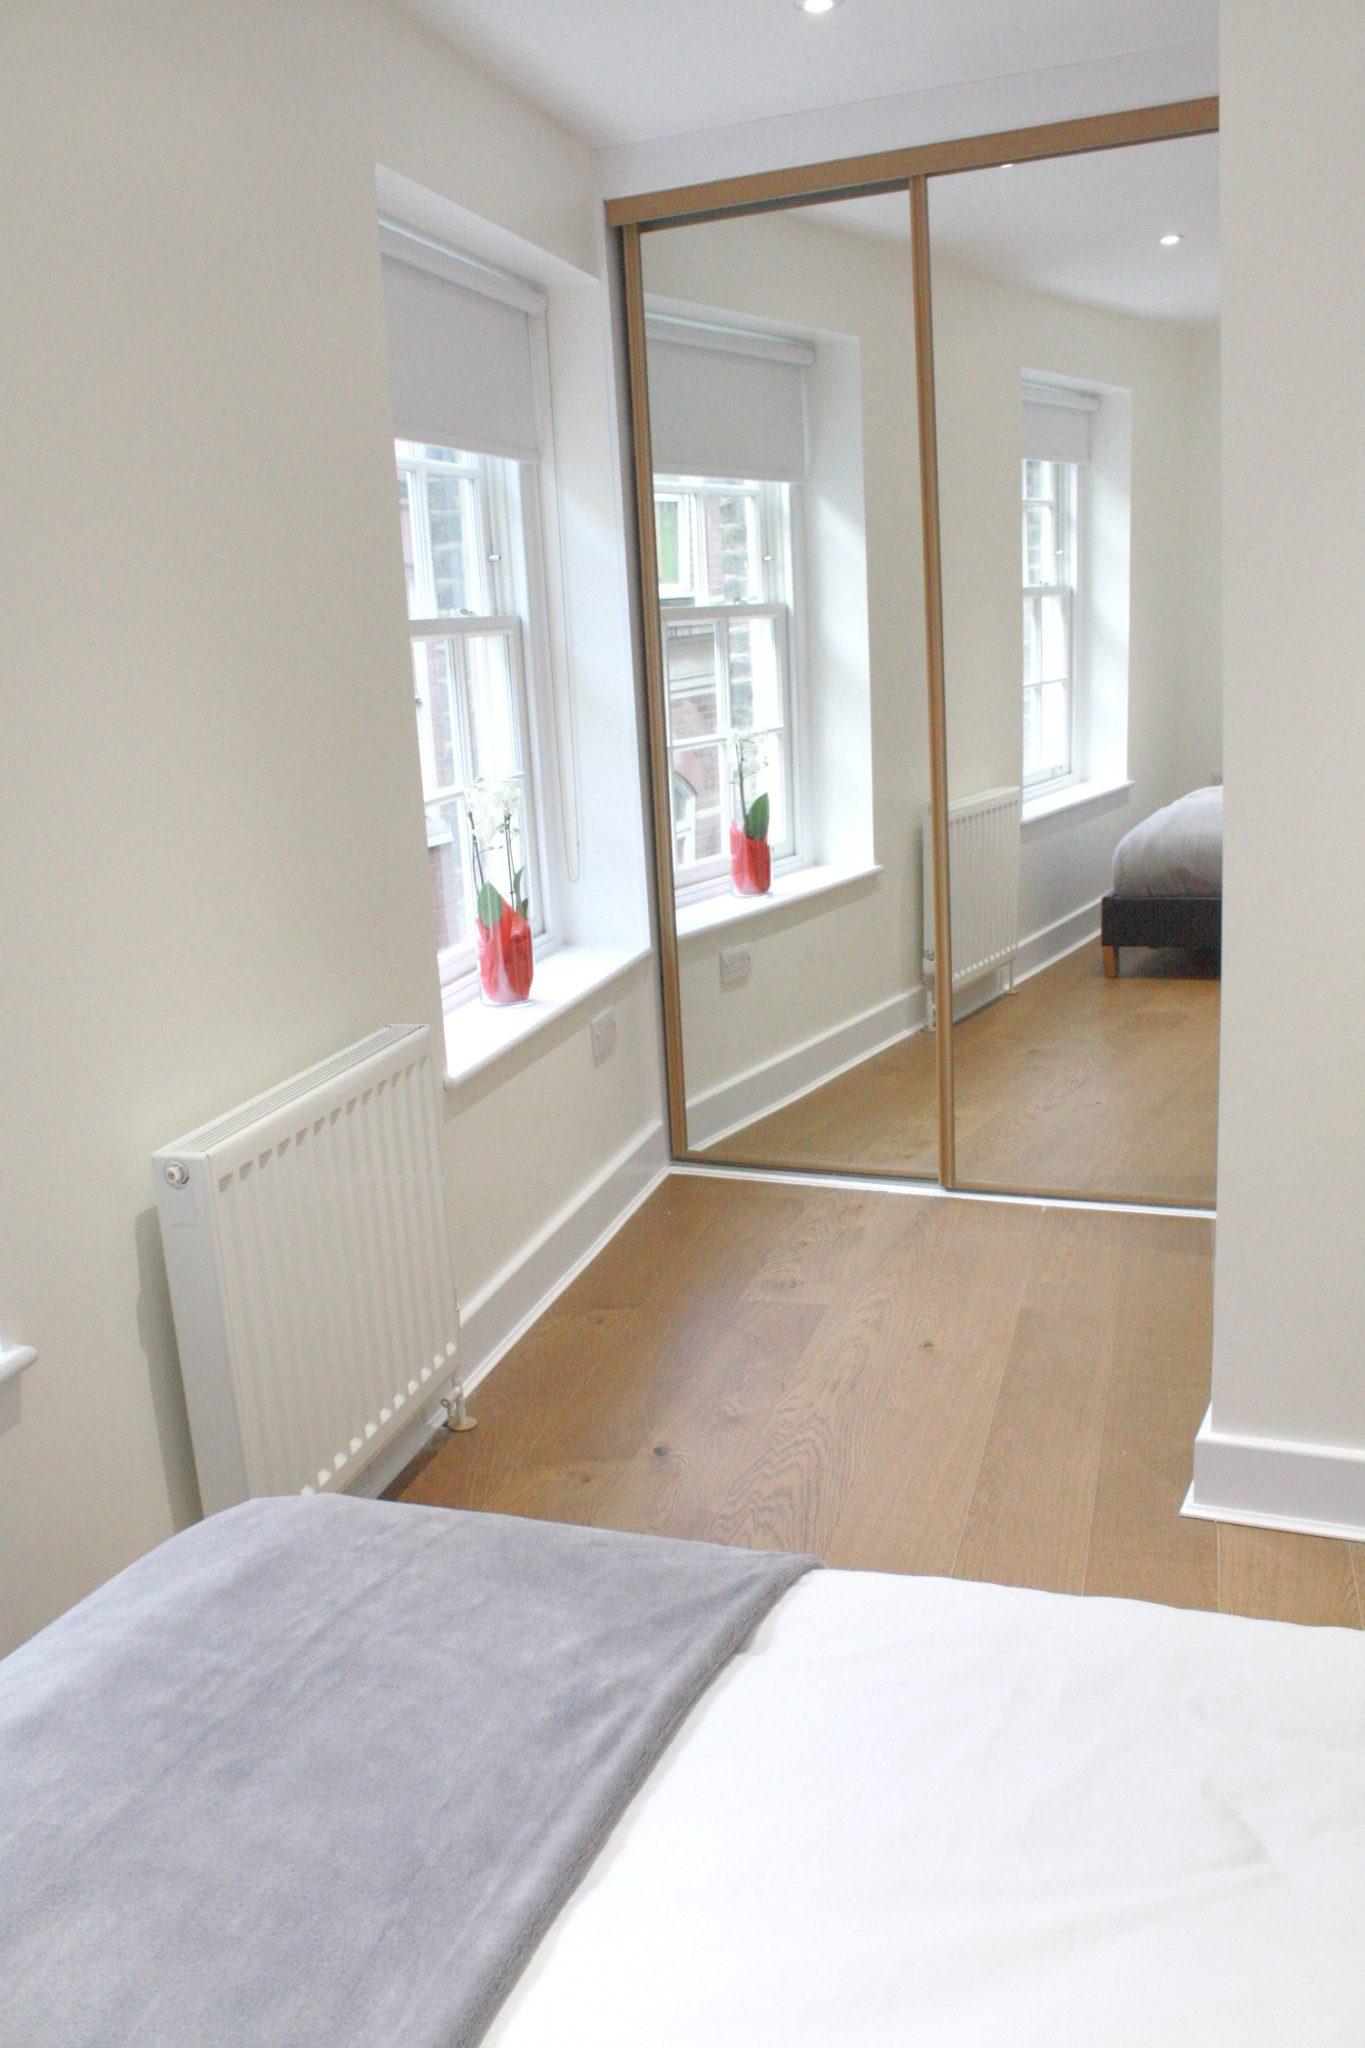 Liverpool Street Serviced Accommodation Artillery Lane Apartments Bedroom Mirror